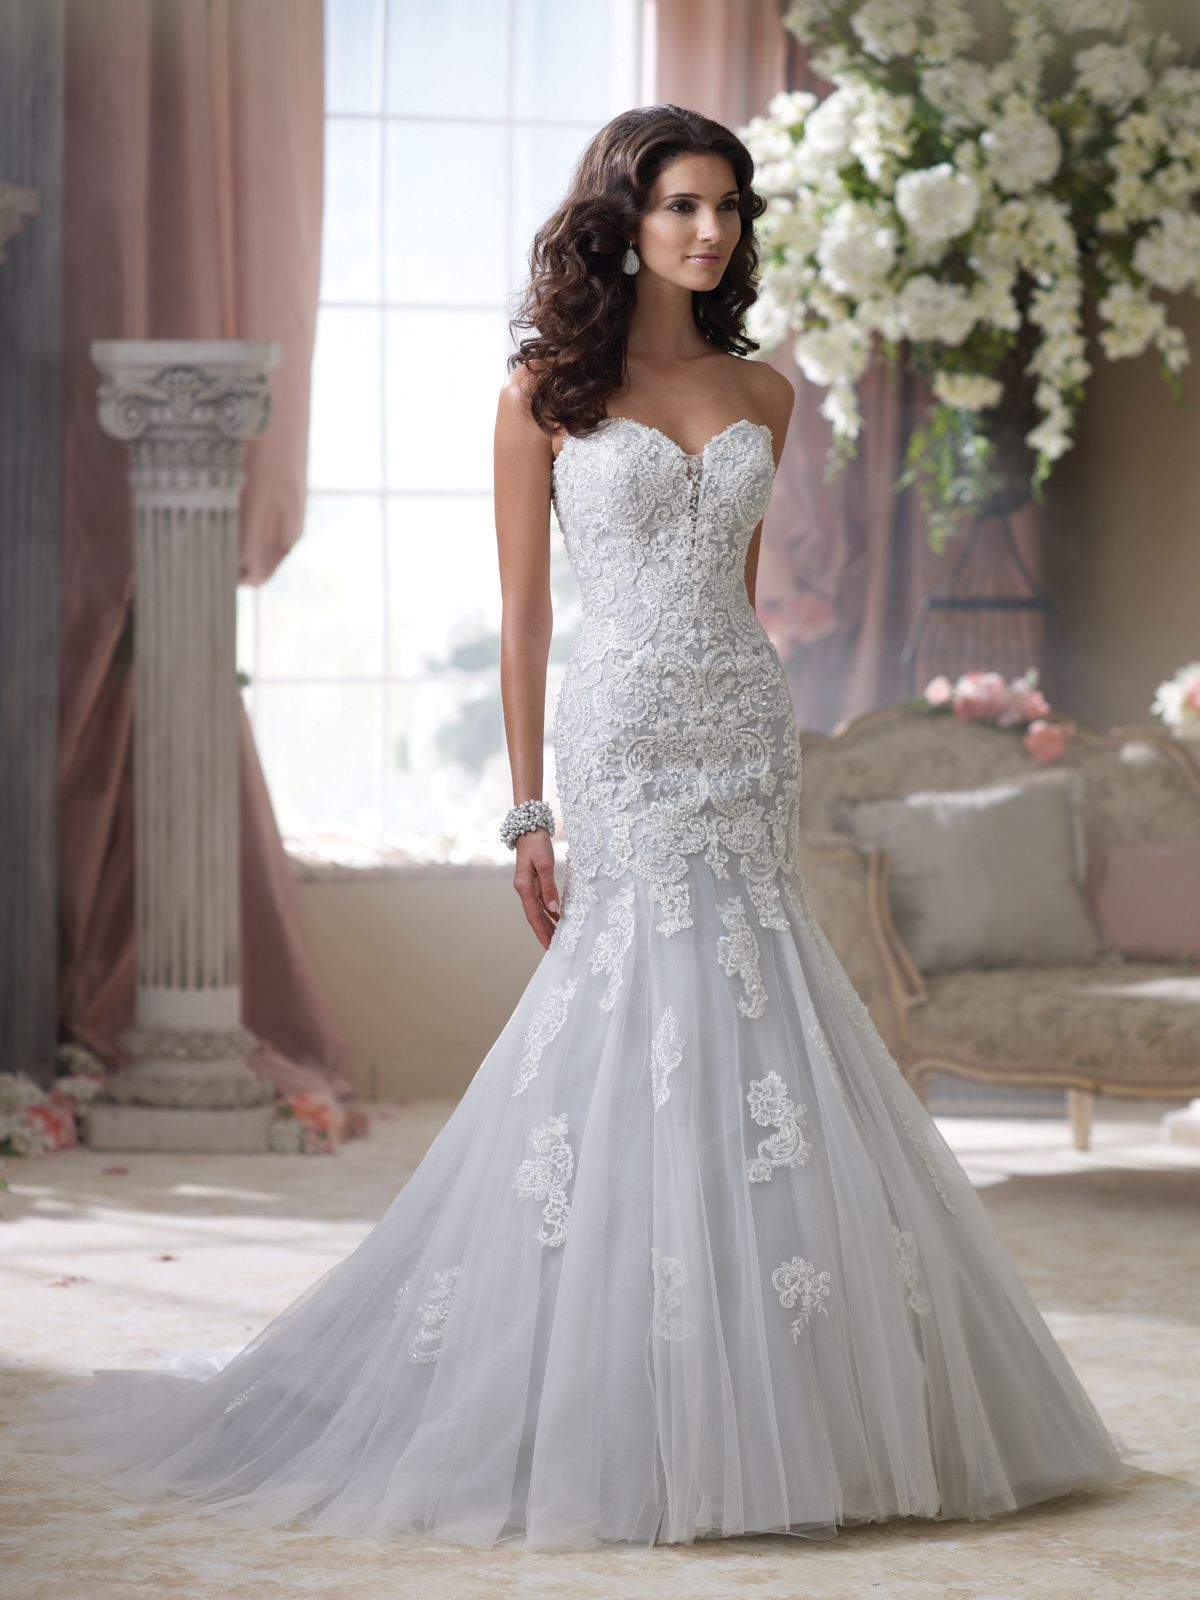 Strapless Hand Beaded Lace Trumpet Wedding Dress 114293 Beryl